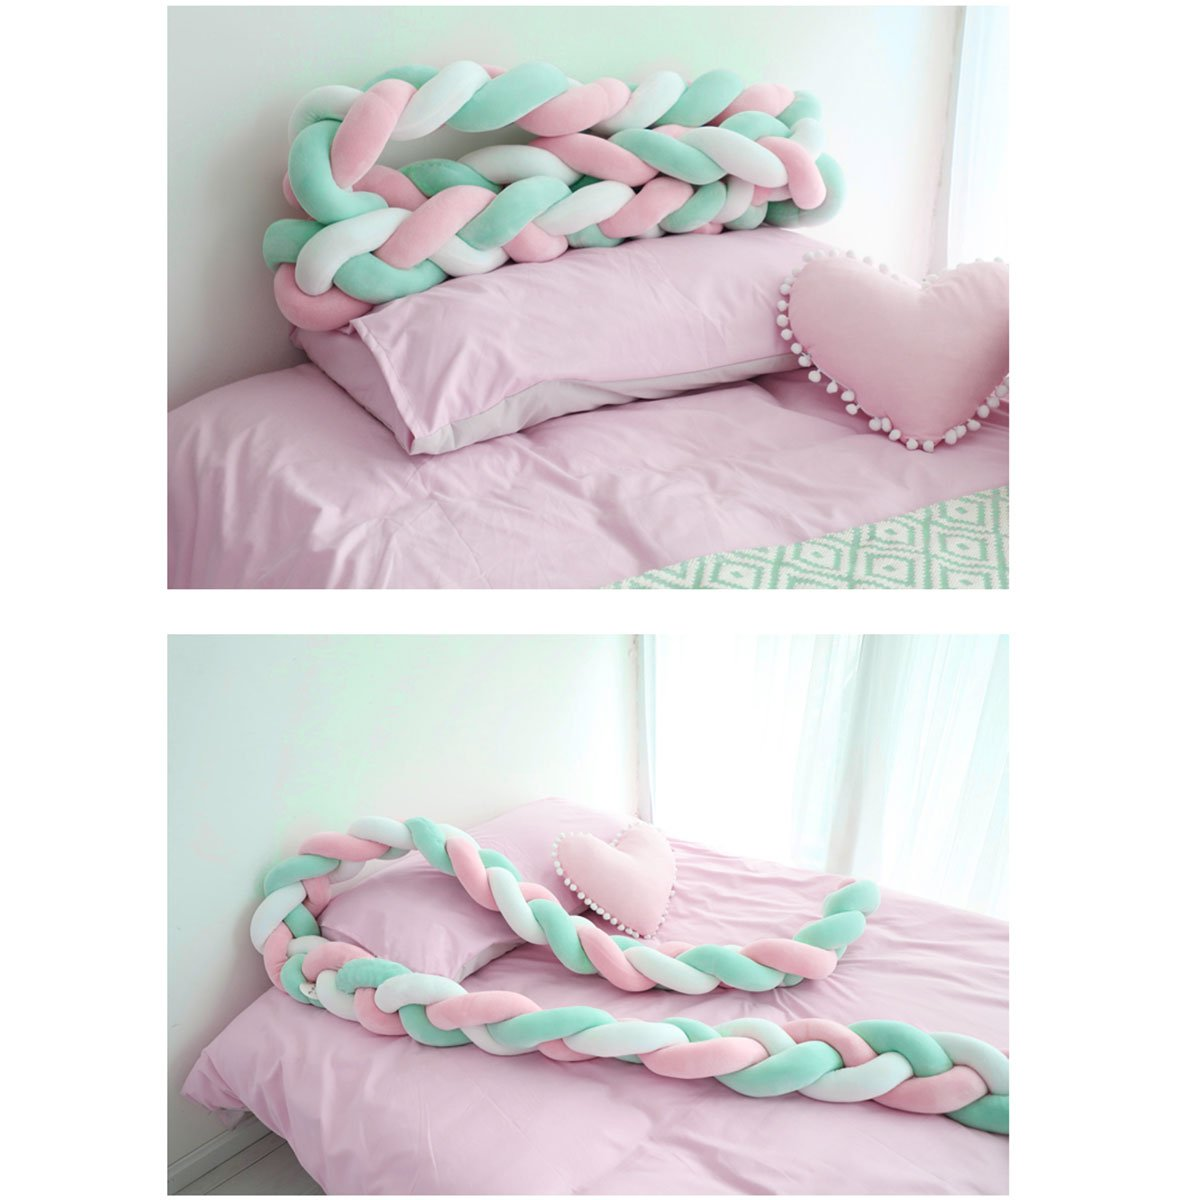 CHICTRY Baby Crib Bumper Knotted Braid Weaving Protective Pillow Infant Toddlers Bed Sleep Bumper Plush Nursery Cradle Crib Protector Cushion Baby Shower Gift Pink&Green 80 inches